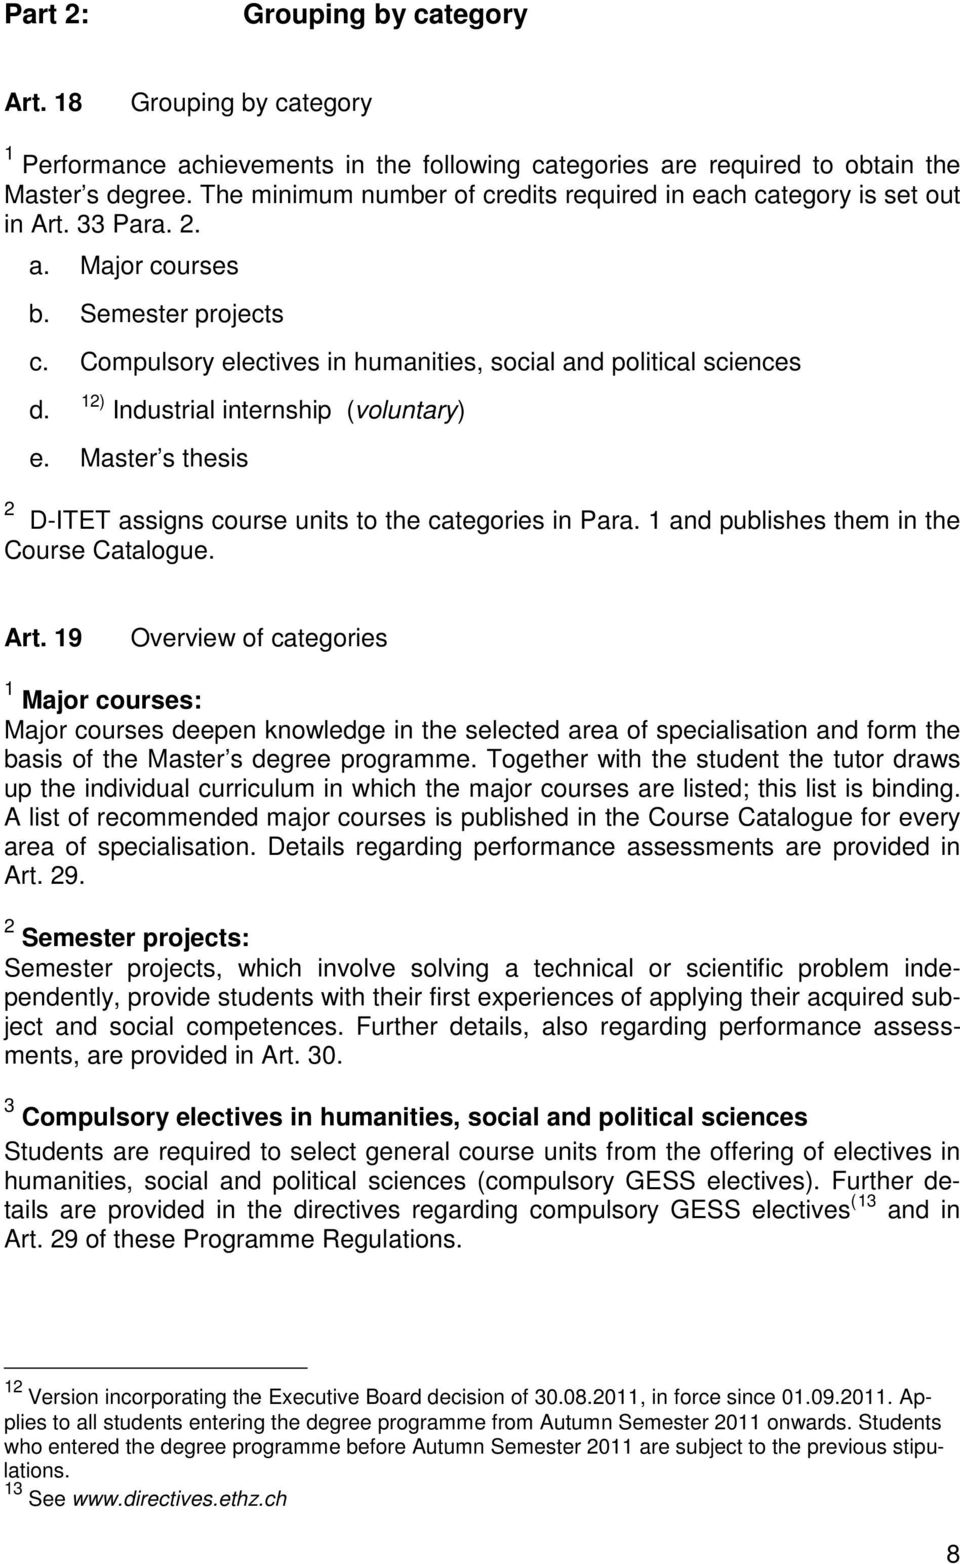 12) Industrial internship (voluntary) e. Master s thesis 2 D-ITET assigns course units to the categories in Para. 1 and publishes them in the Course Catalogue. Art.